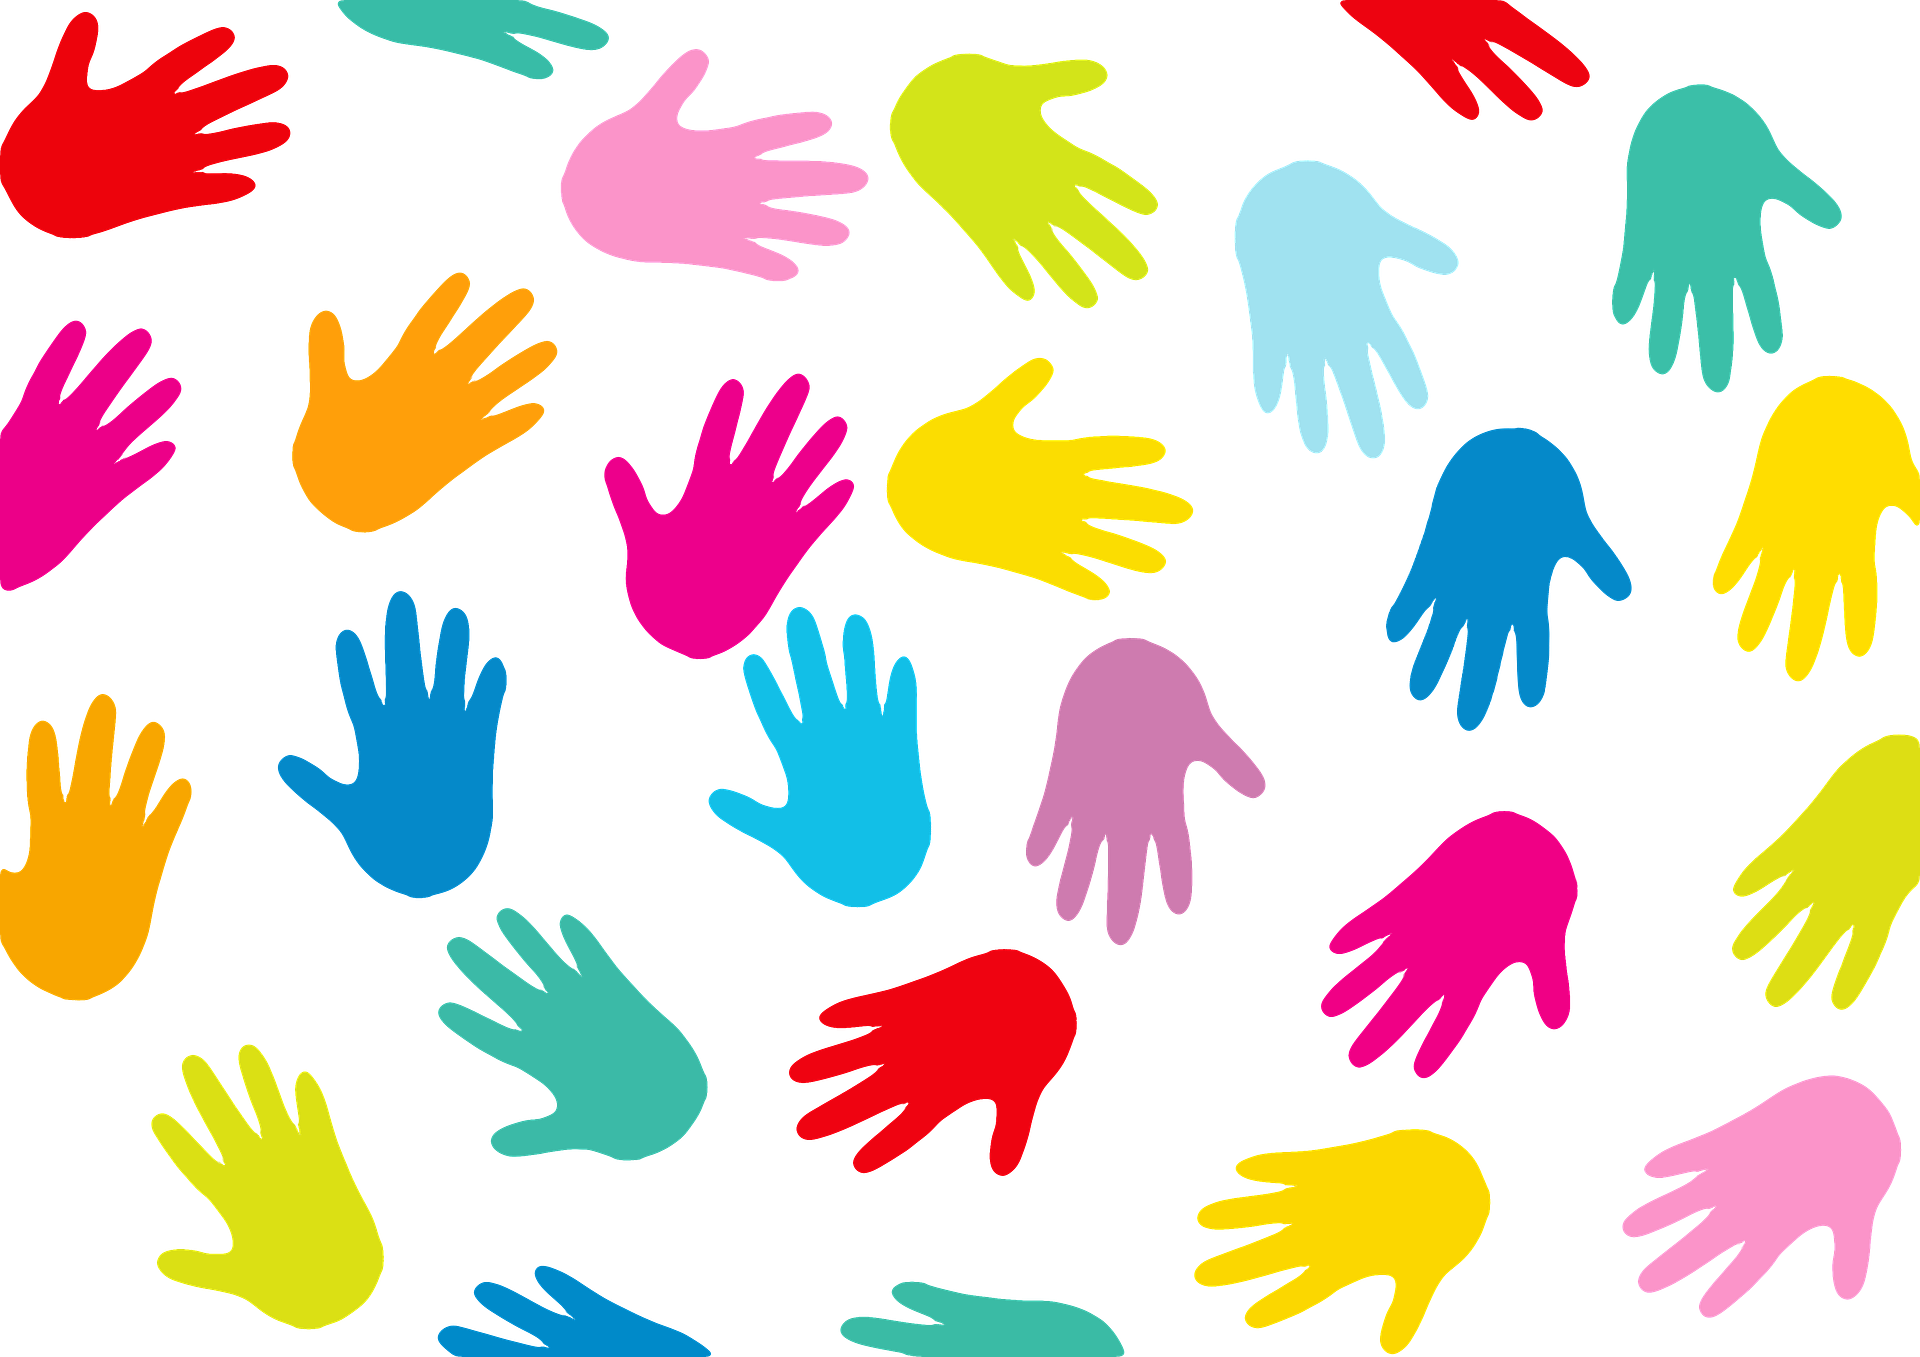 Multicolored hands